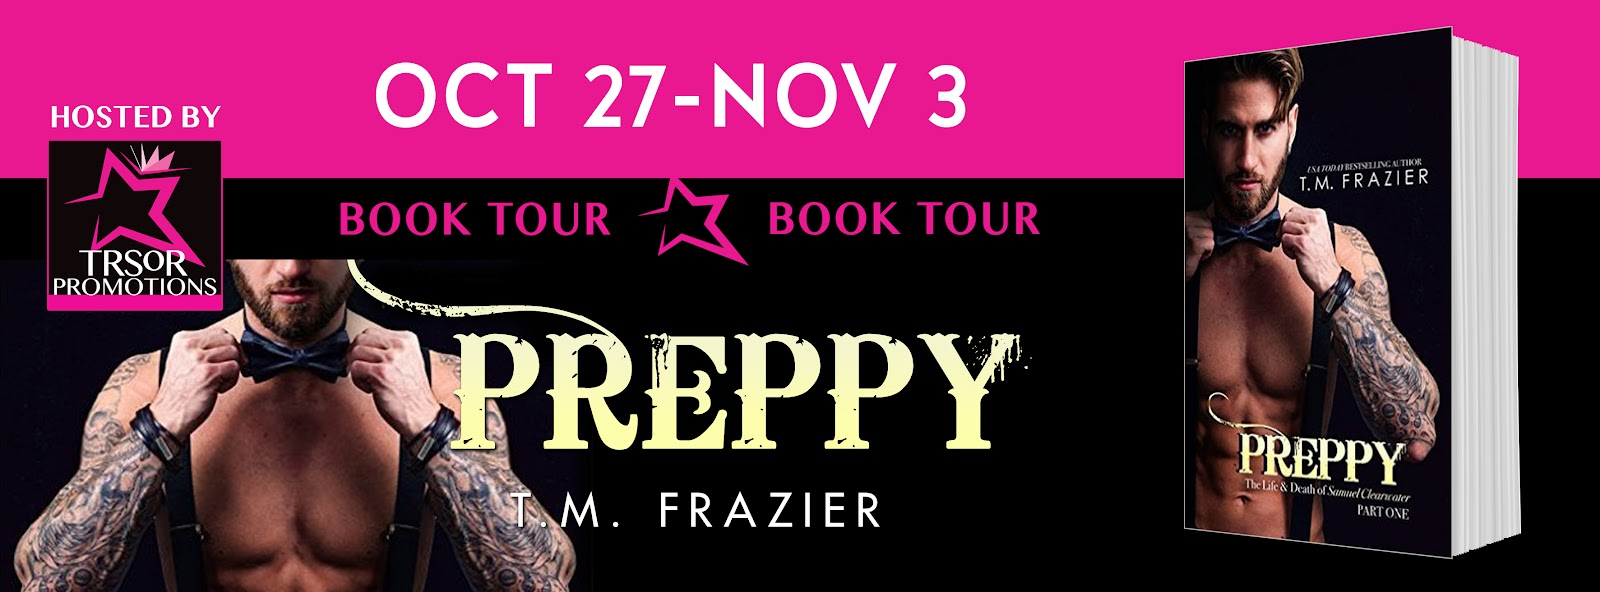 PREPPY_BOOK_TOUR.jpg